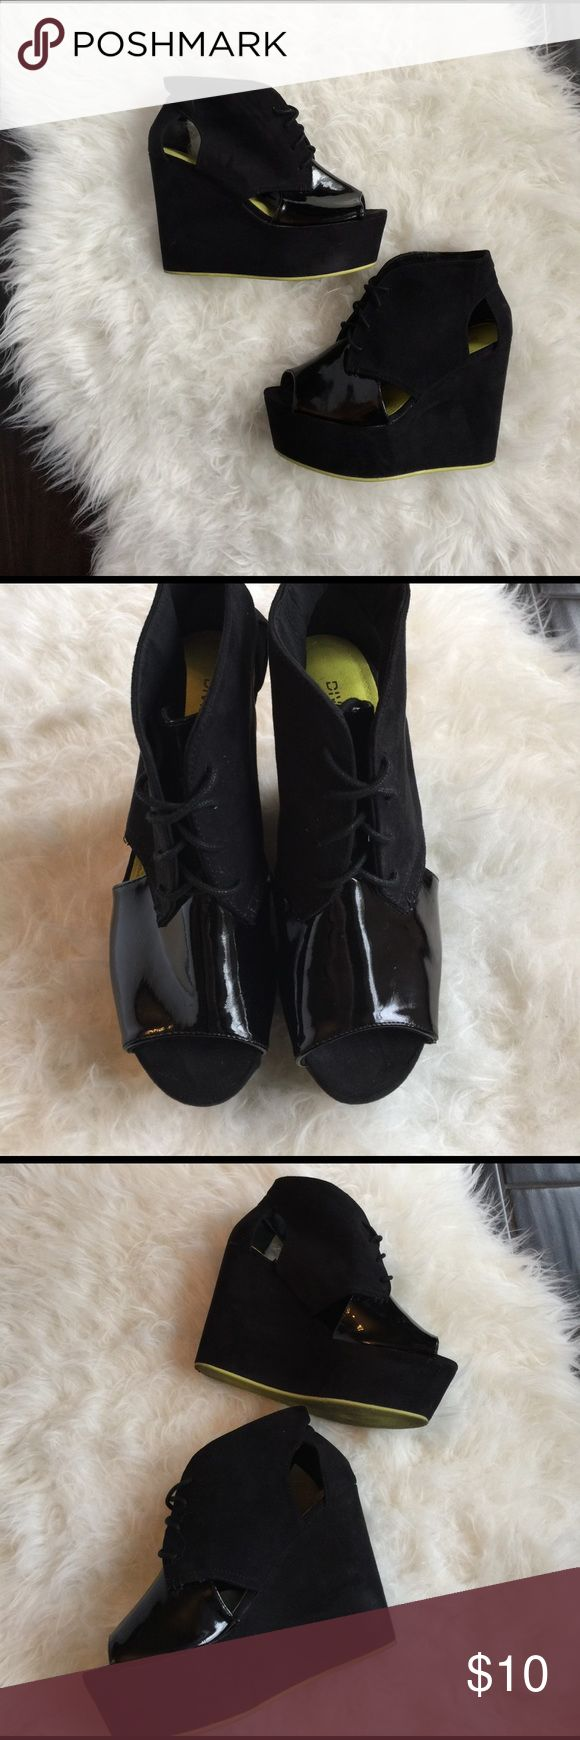 Black platform wedge shoes.  Black wedge shoes Good used condition black wedge shoes from H&M. These shoes are very lightweight and easy to wear. Tiny stripe of lime green on the sole. Approximately 4 1/4 heel height at the tallest point and approximately 2 inches at lowest. Please review photos for details and where, no lowball offers or trades. Reasonable offers considered. Divided Shoes Wedges